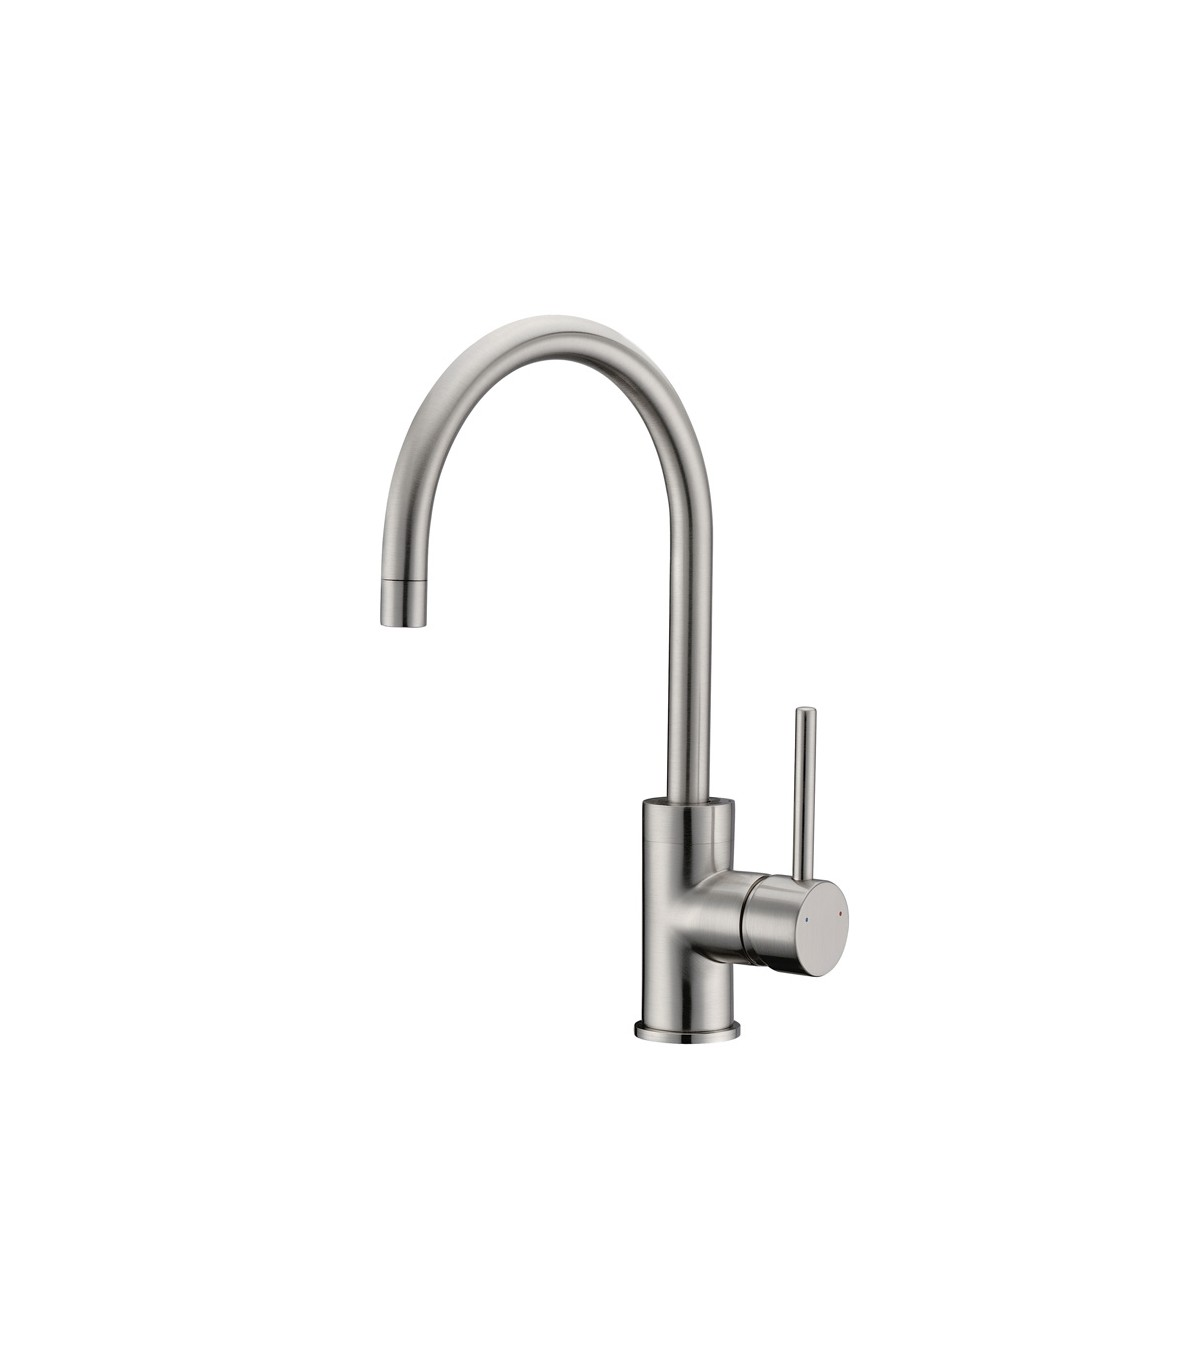 Ls 370002 Single Hole Bar Faucet In Brushed Nickel